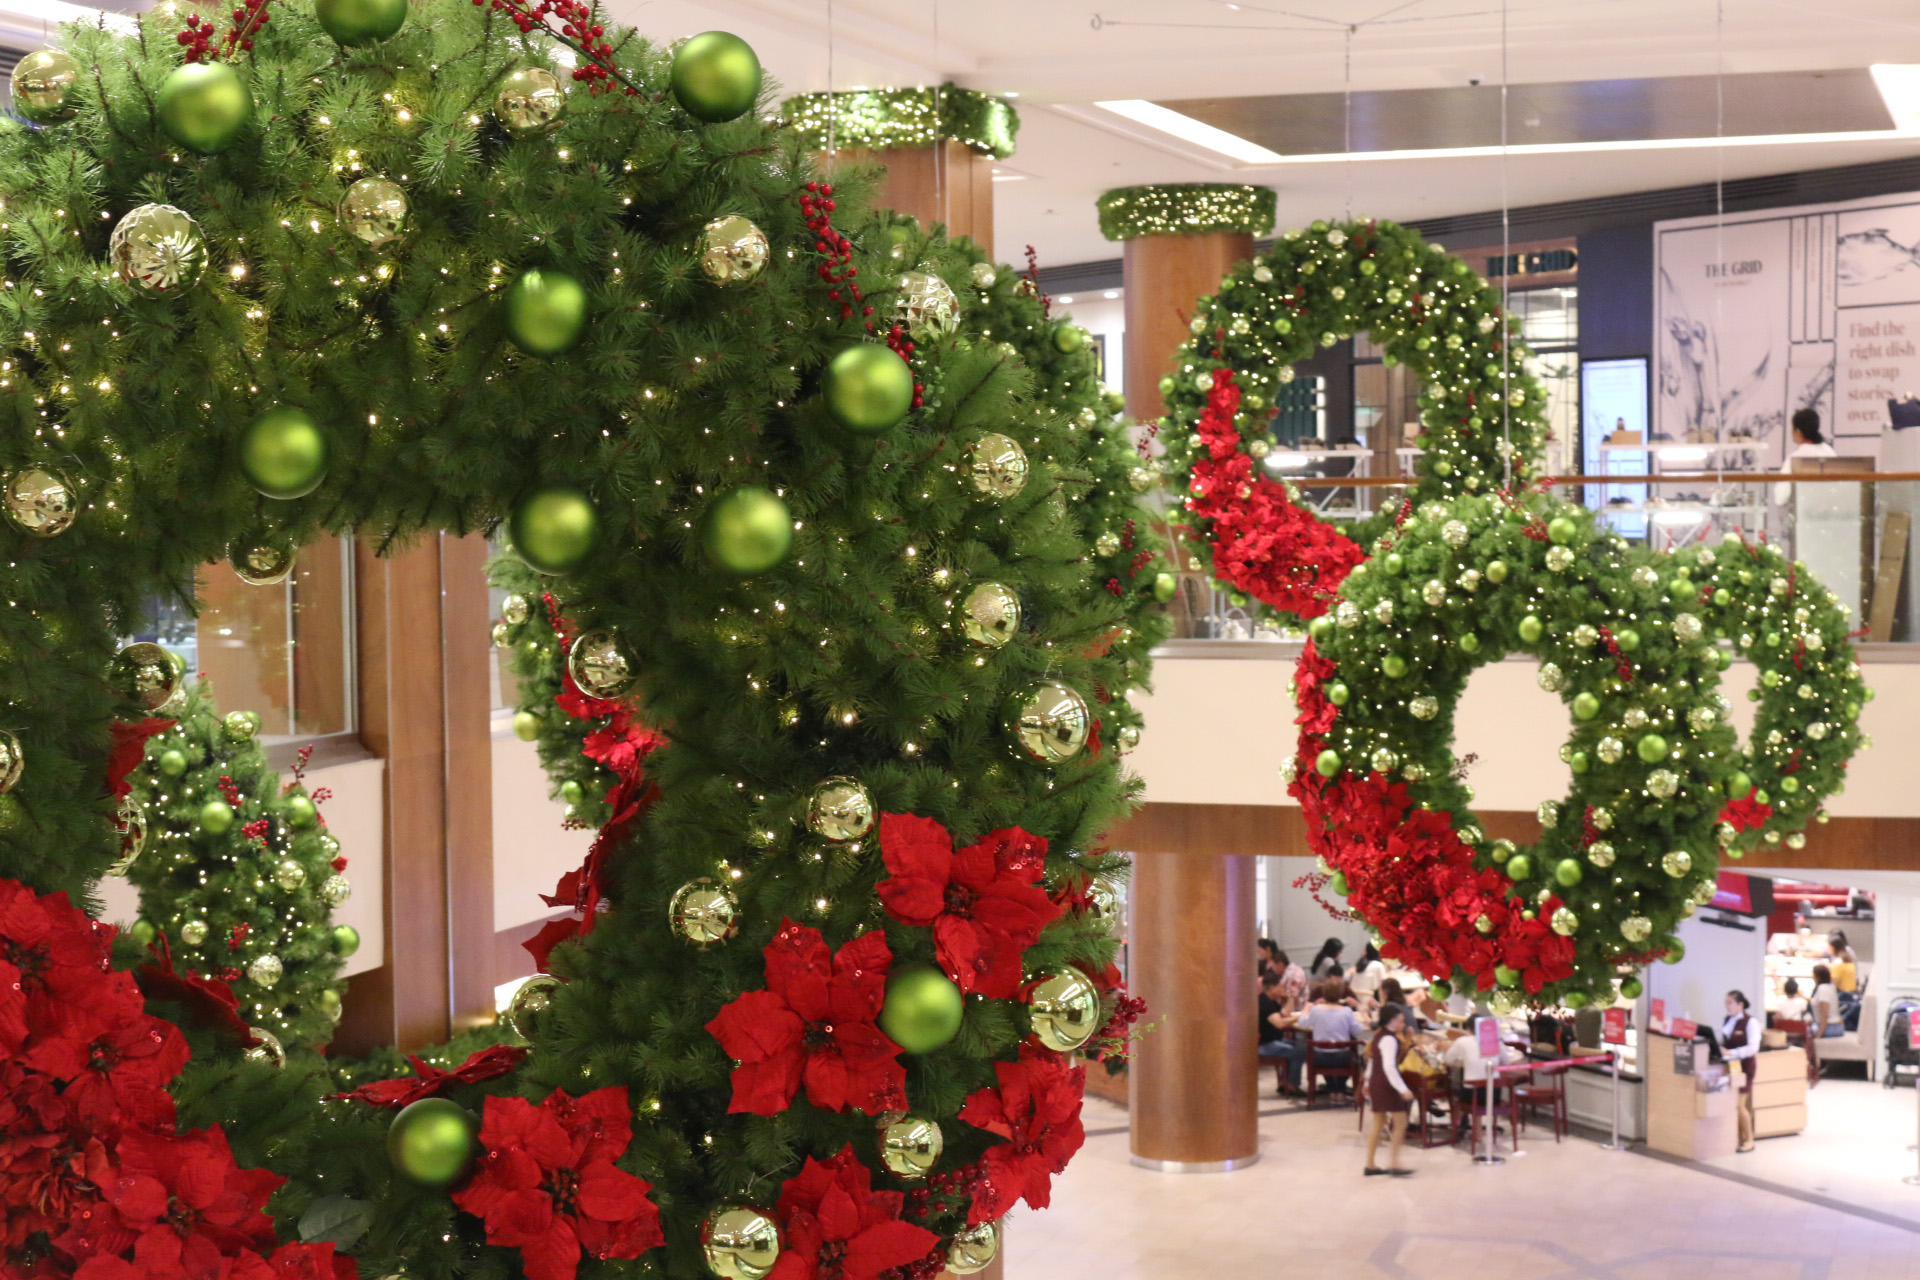 The giant wreaths are among the mall's trademark Christmas ornament